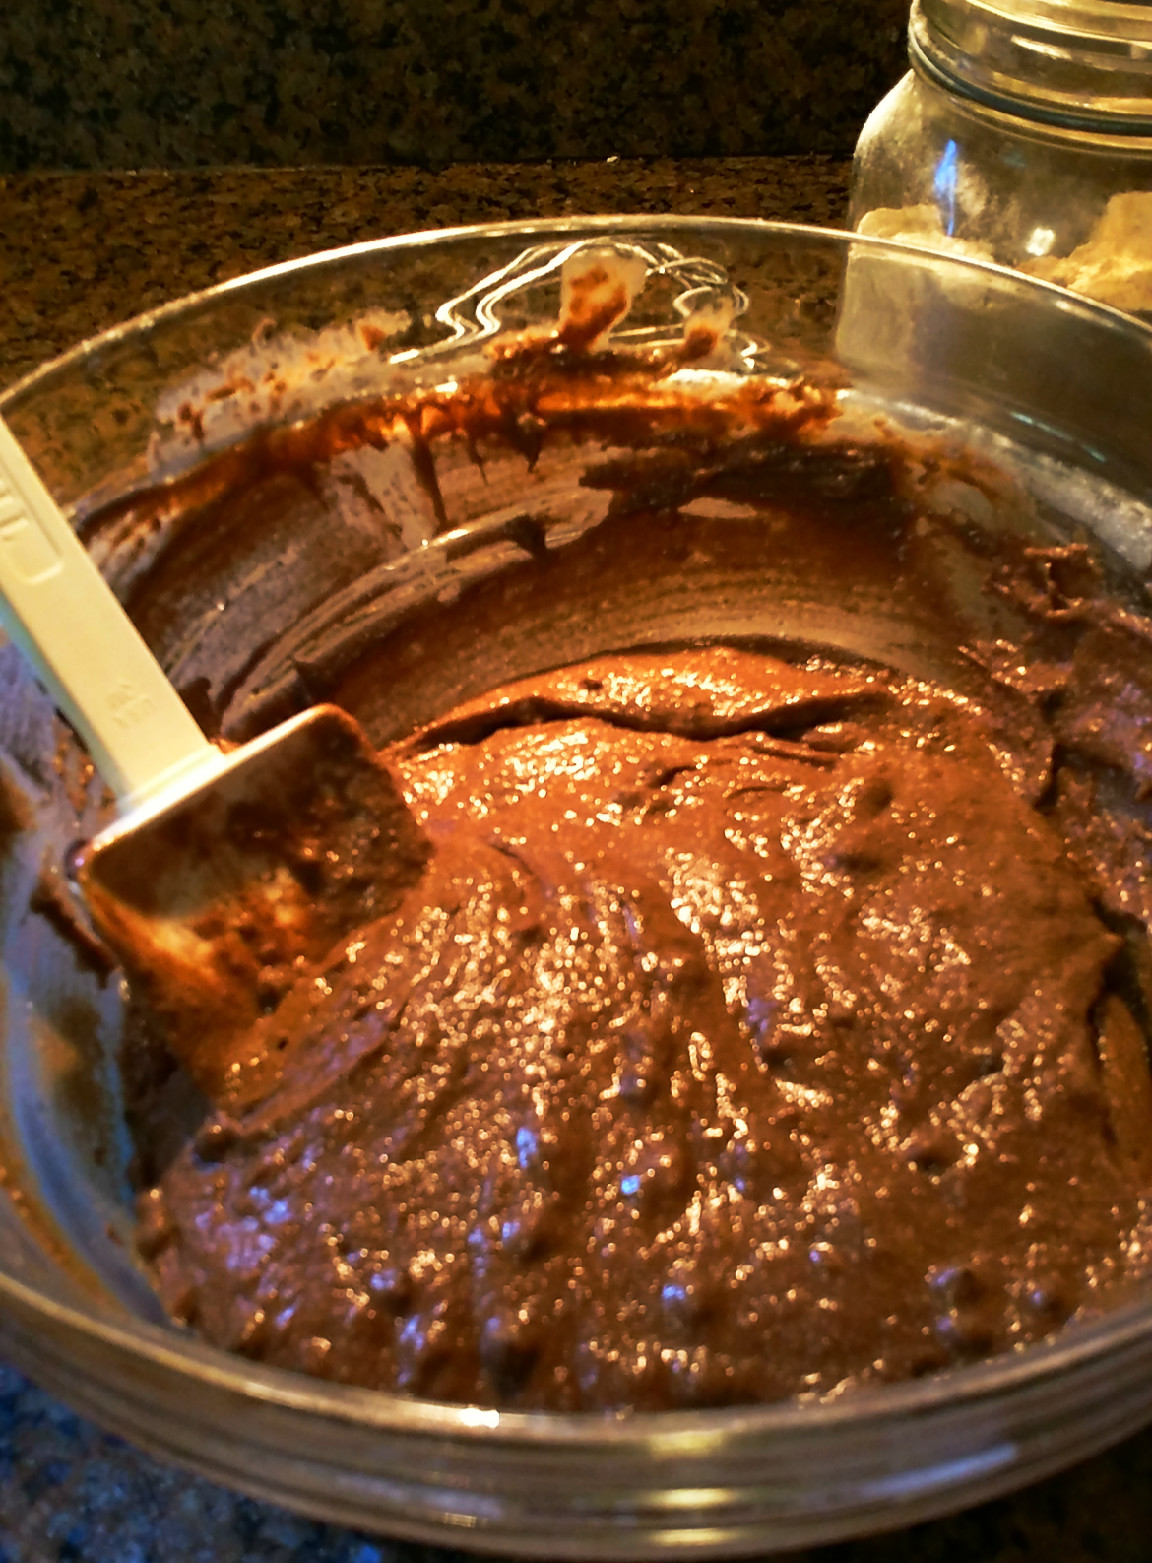 chocolate batteredited